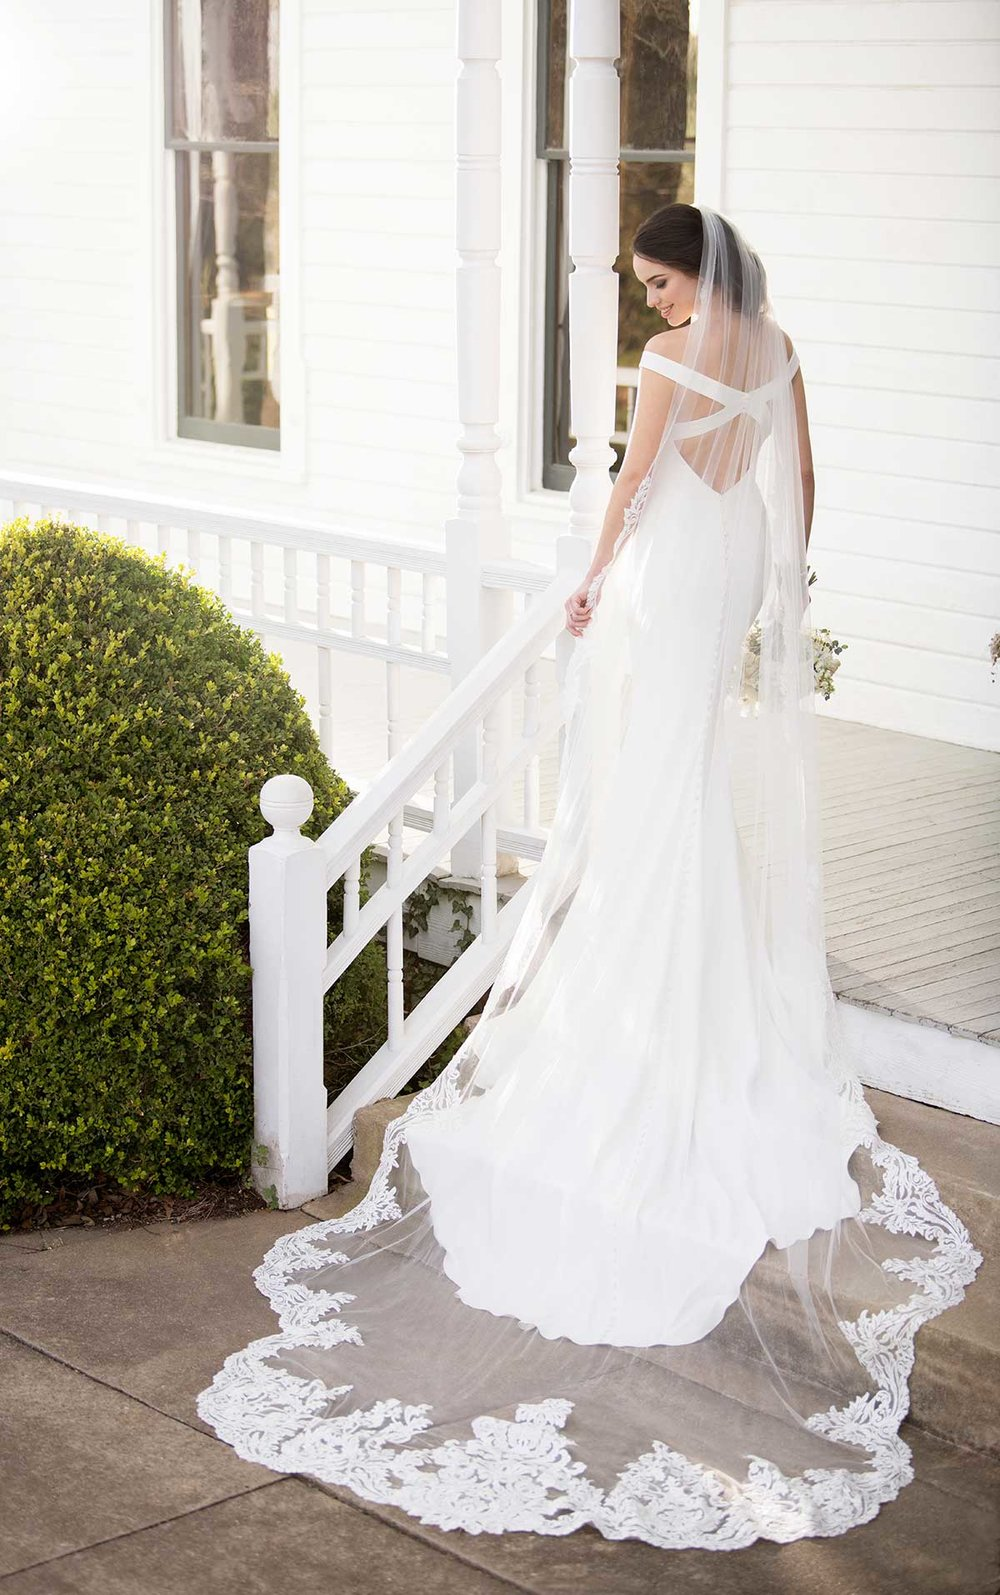 Veil available at Bride To Be Couture - Inventory # 02787